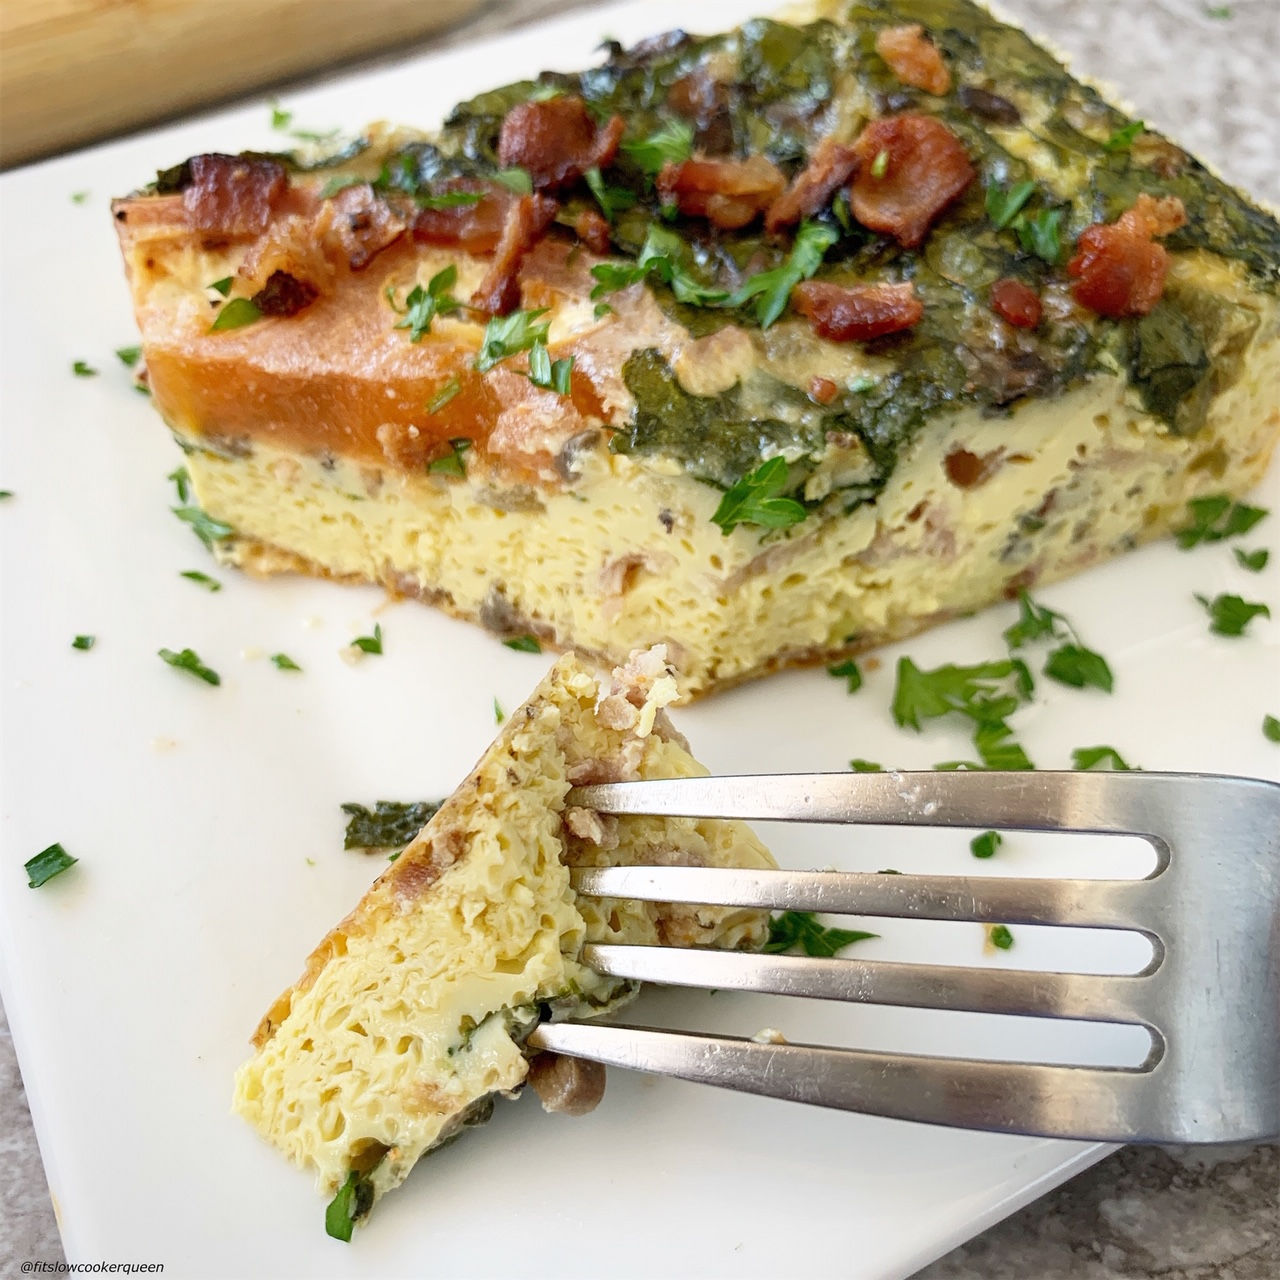 plated pic of {VIDEO} Slow Cooker Meat & Vegetable Frittata (Low-Carb, Paleo, Whole30)